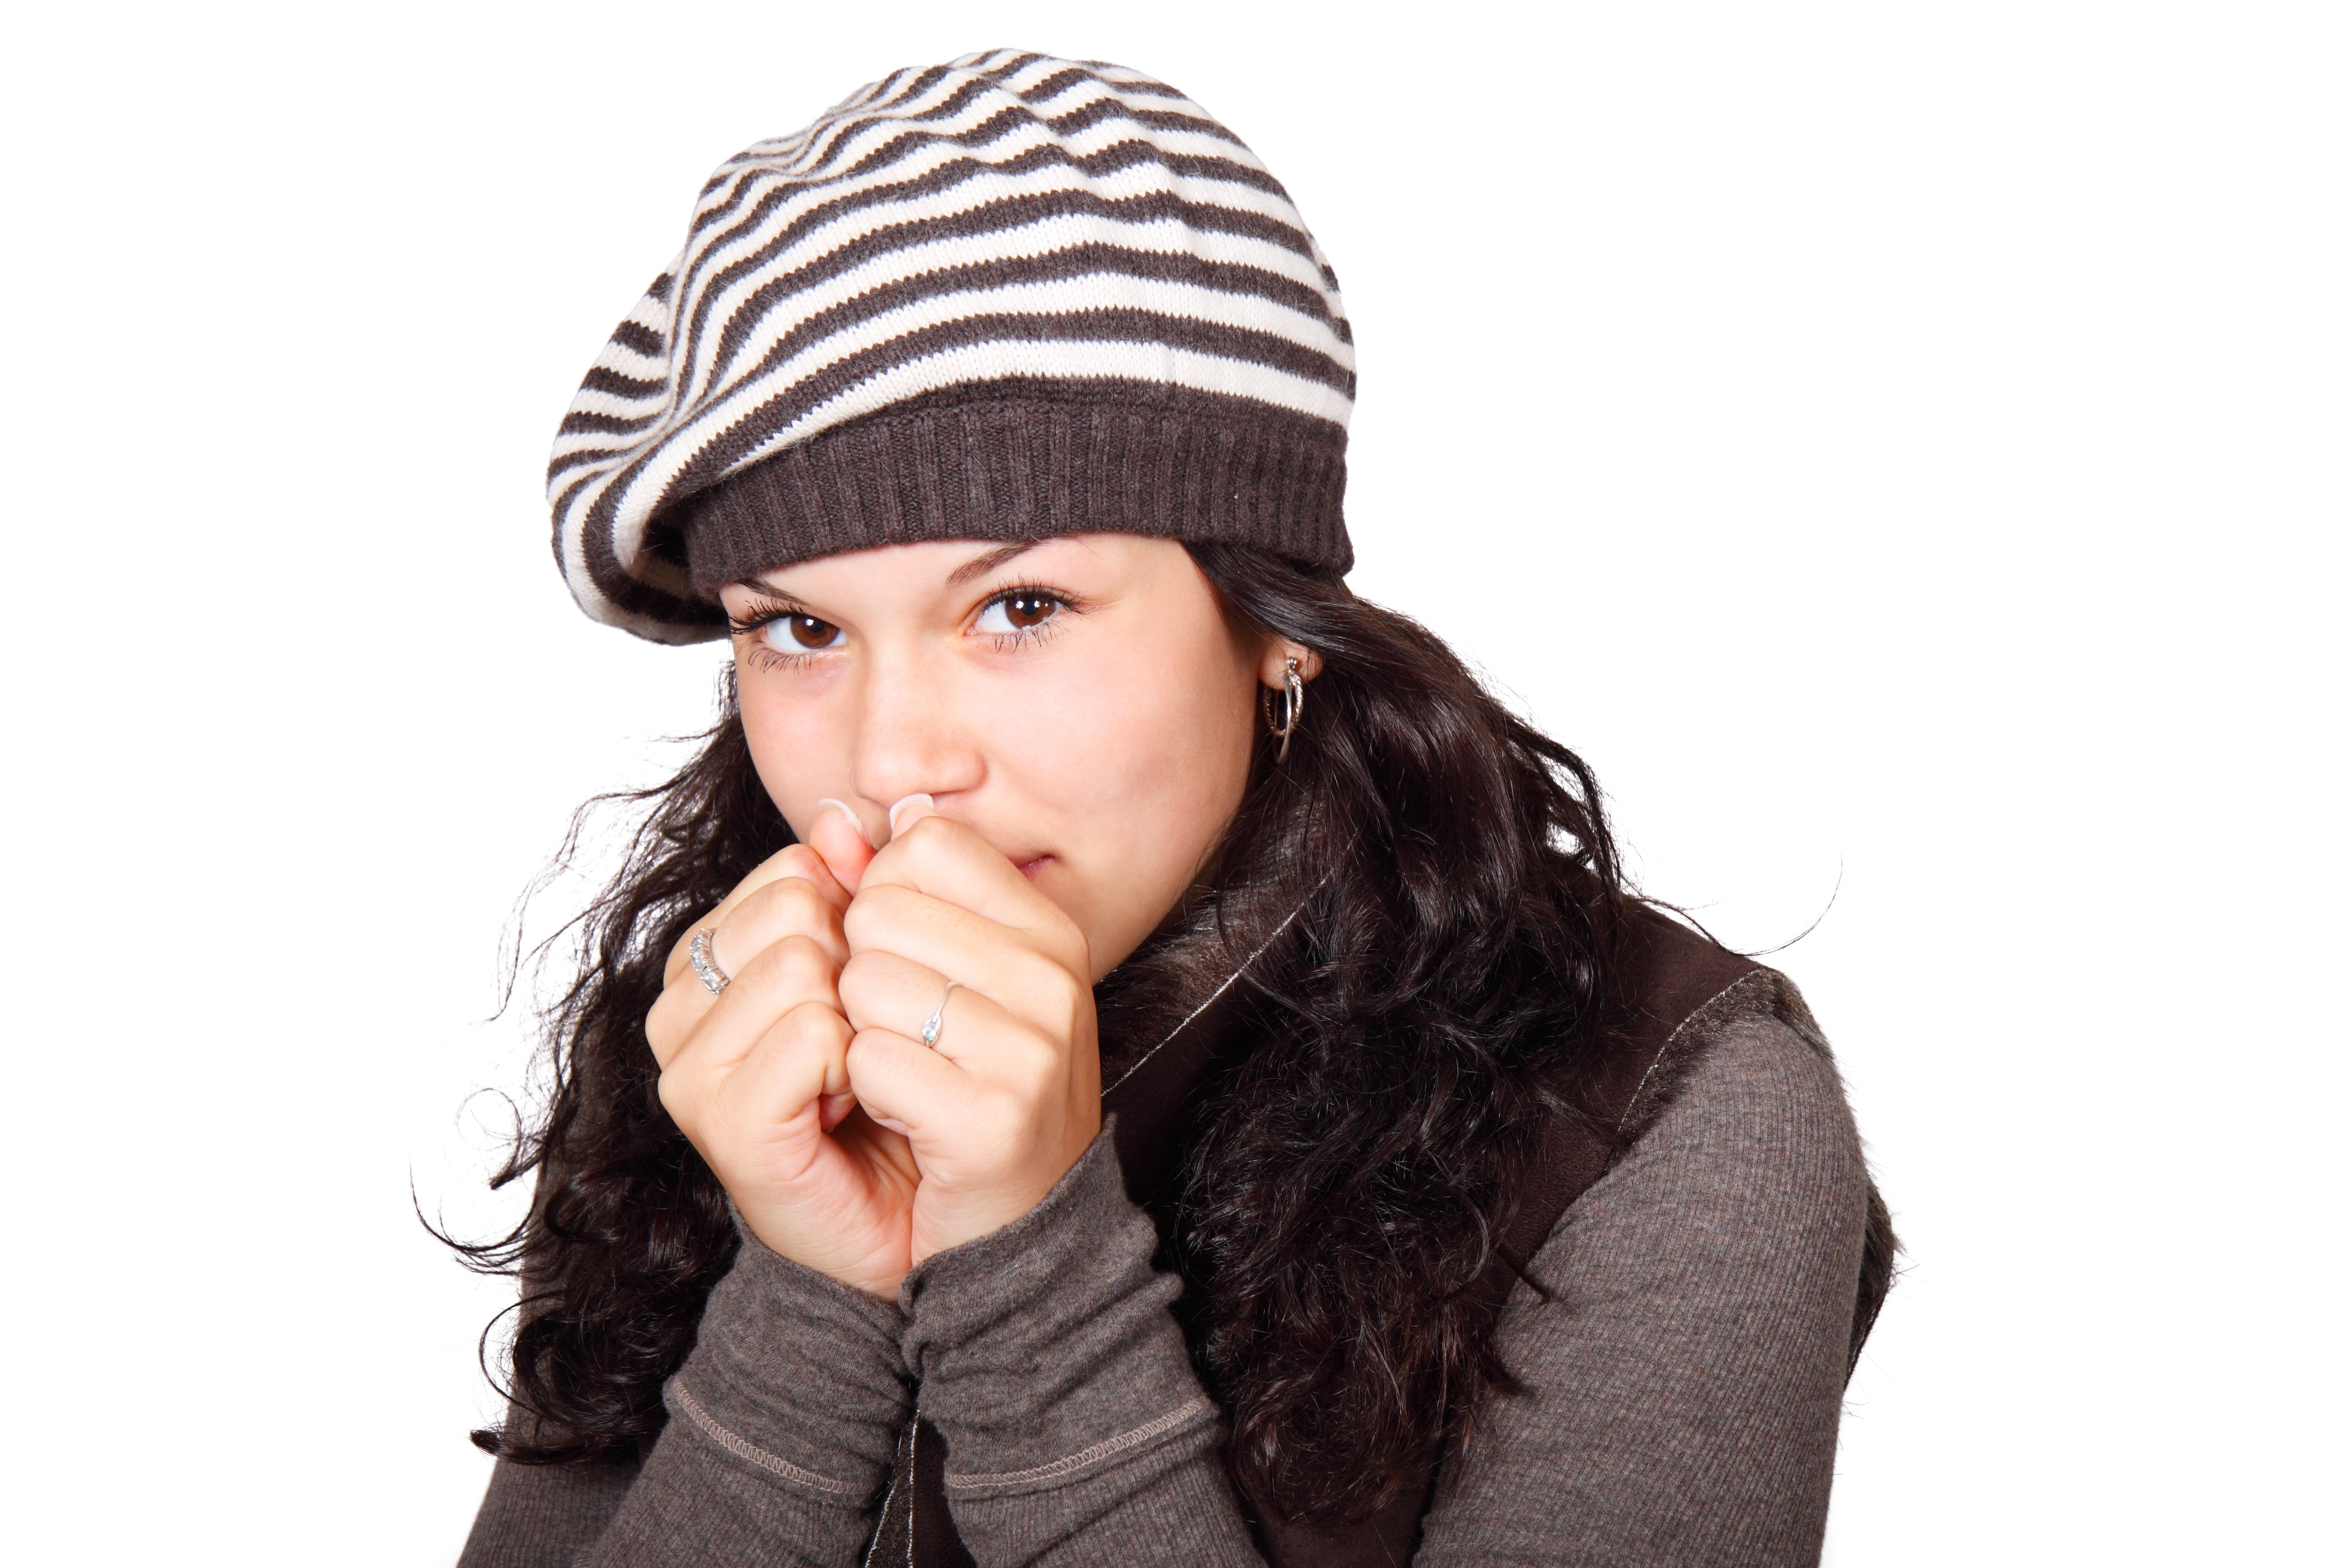 Woman in White and Black Stripe Cap and Grey Shirt Hands to Face, Beanie, Cold, Cute, Face, HQ Photo